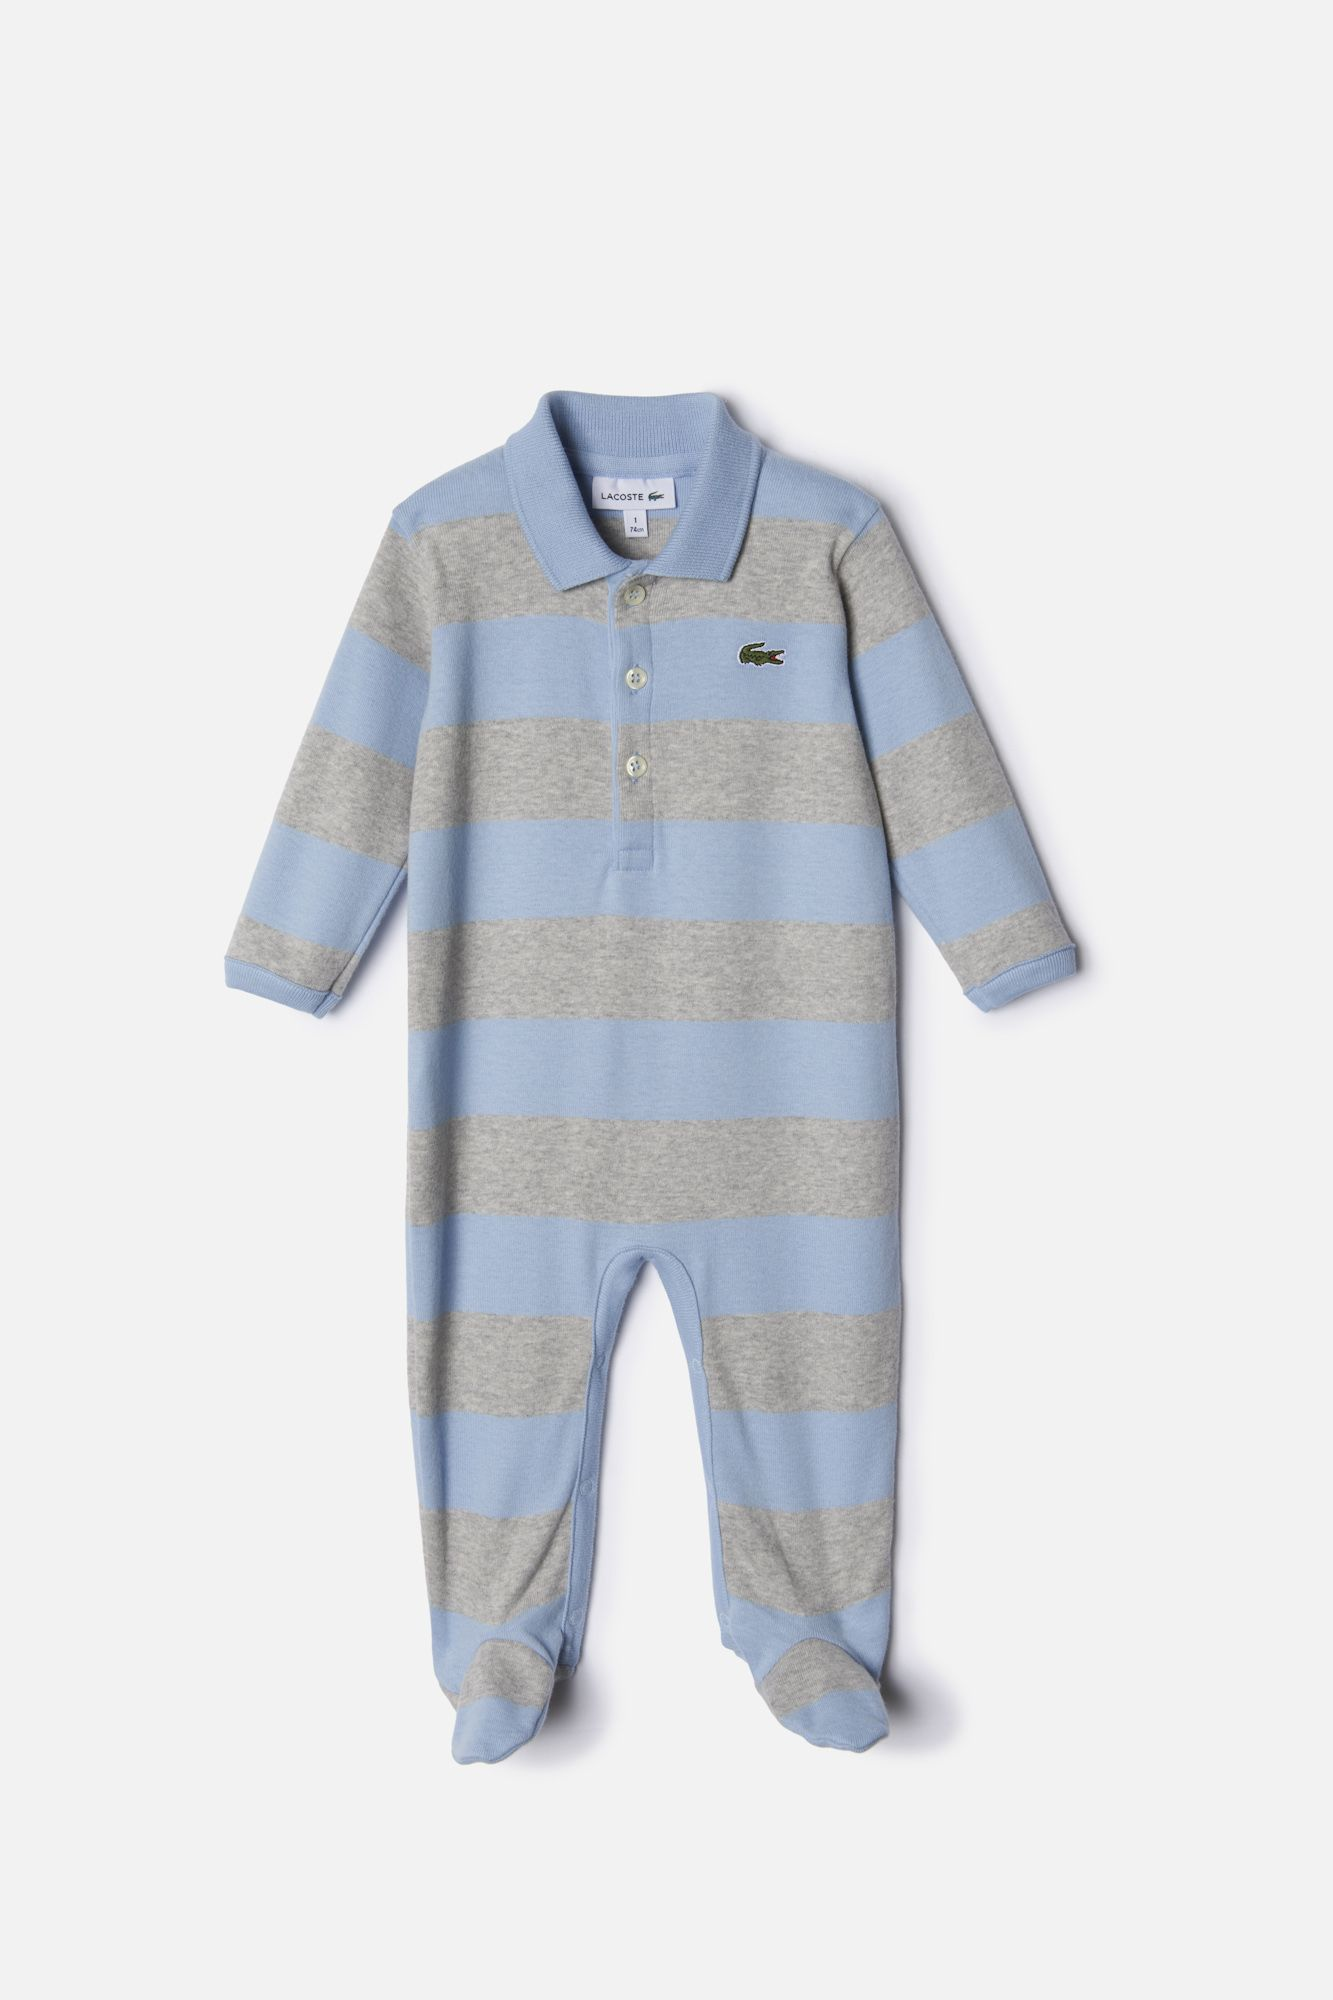 Related: lacoste baby clothing lacoste baby girl lacoste baby boy baby adidas lacoste baby shoes polo baby baby ralph lauren lacoste kids lacoste baby clothes lacoste baby .